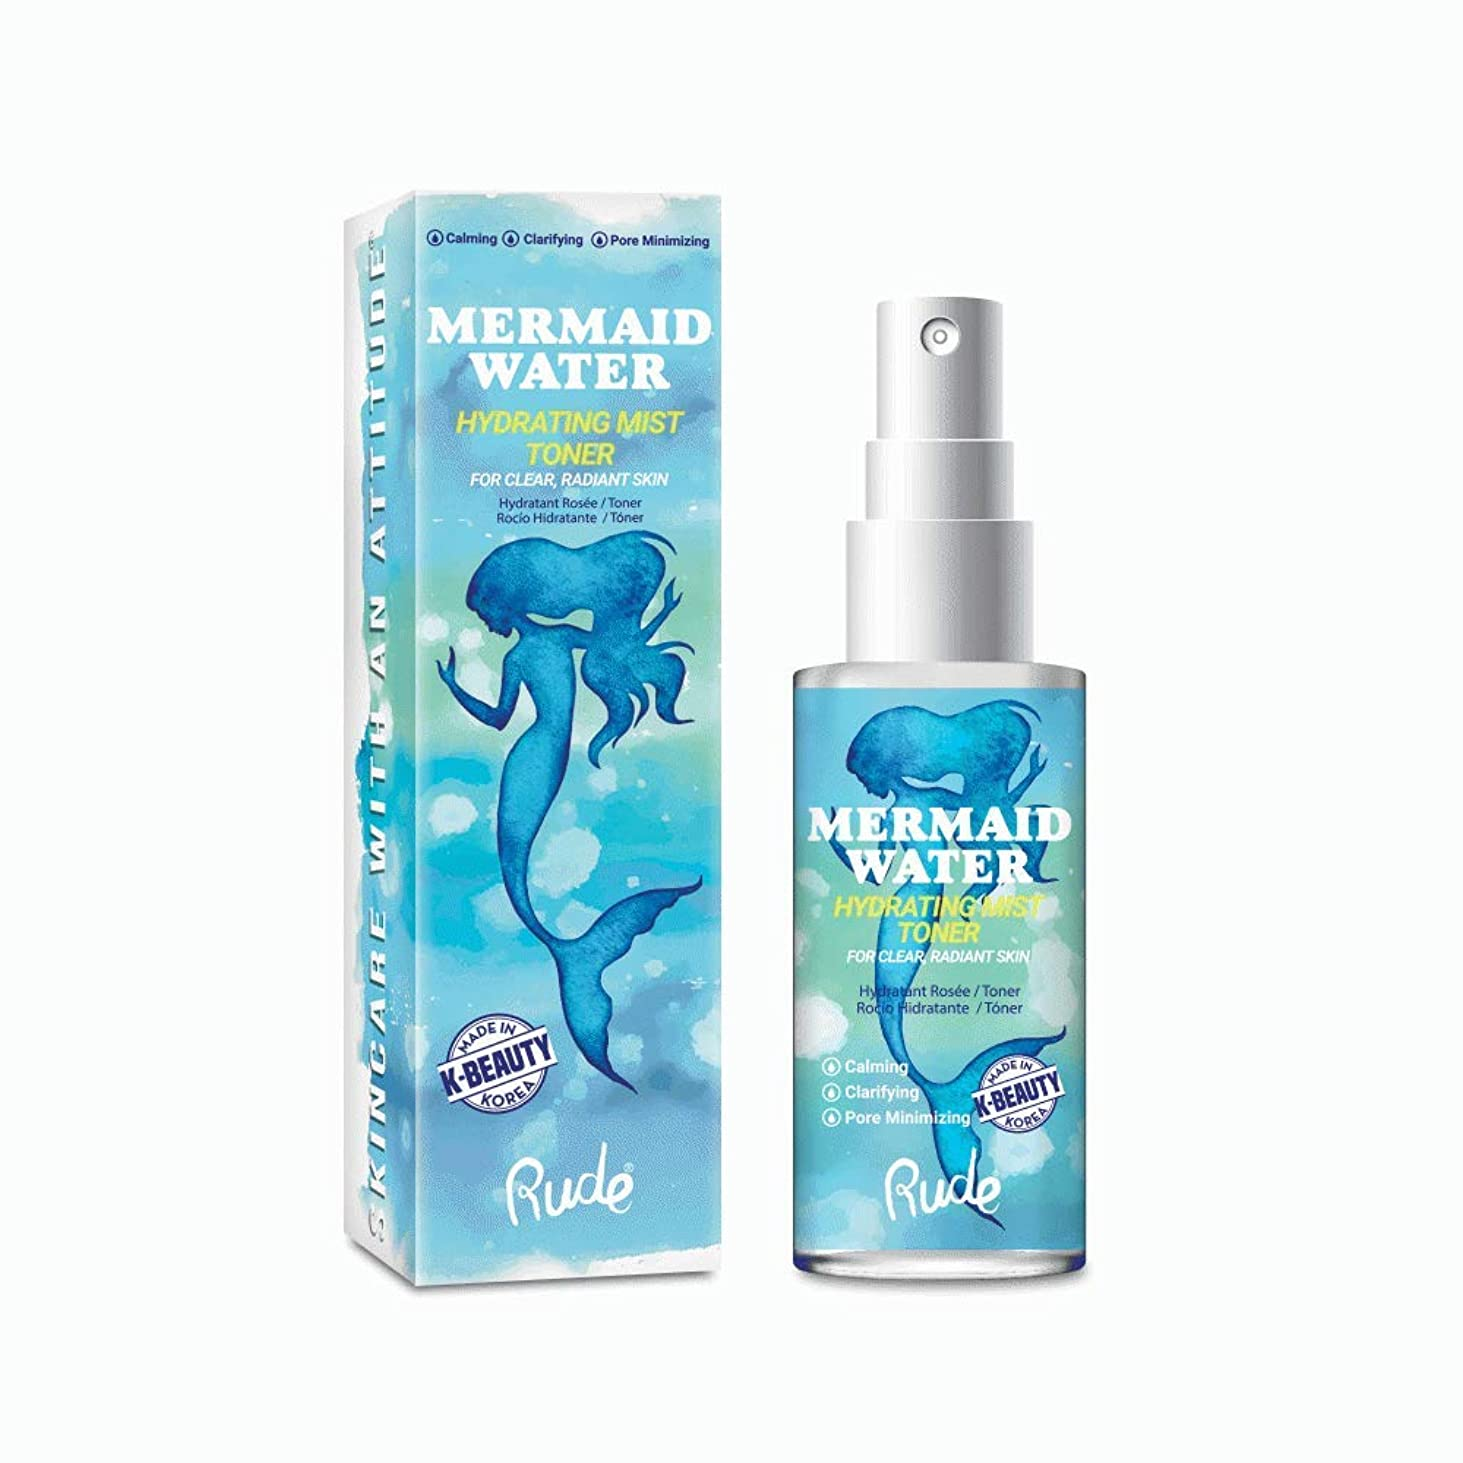 糞短くする銀行(3 Pack) RUDE Mermaid Water Hydrating Mist Toner (並行輸入品)